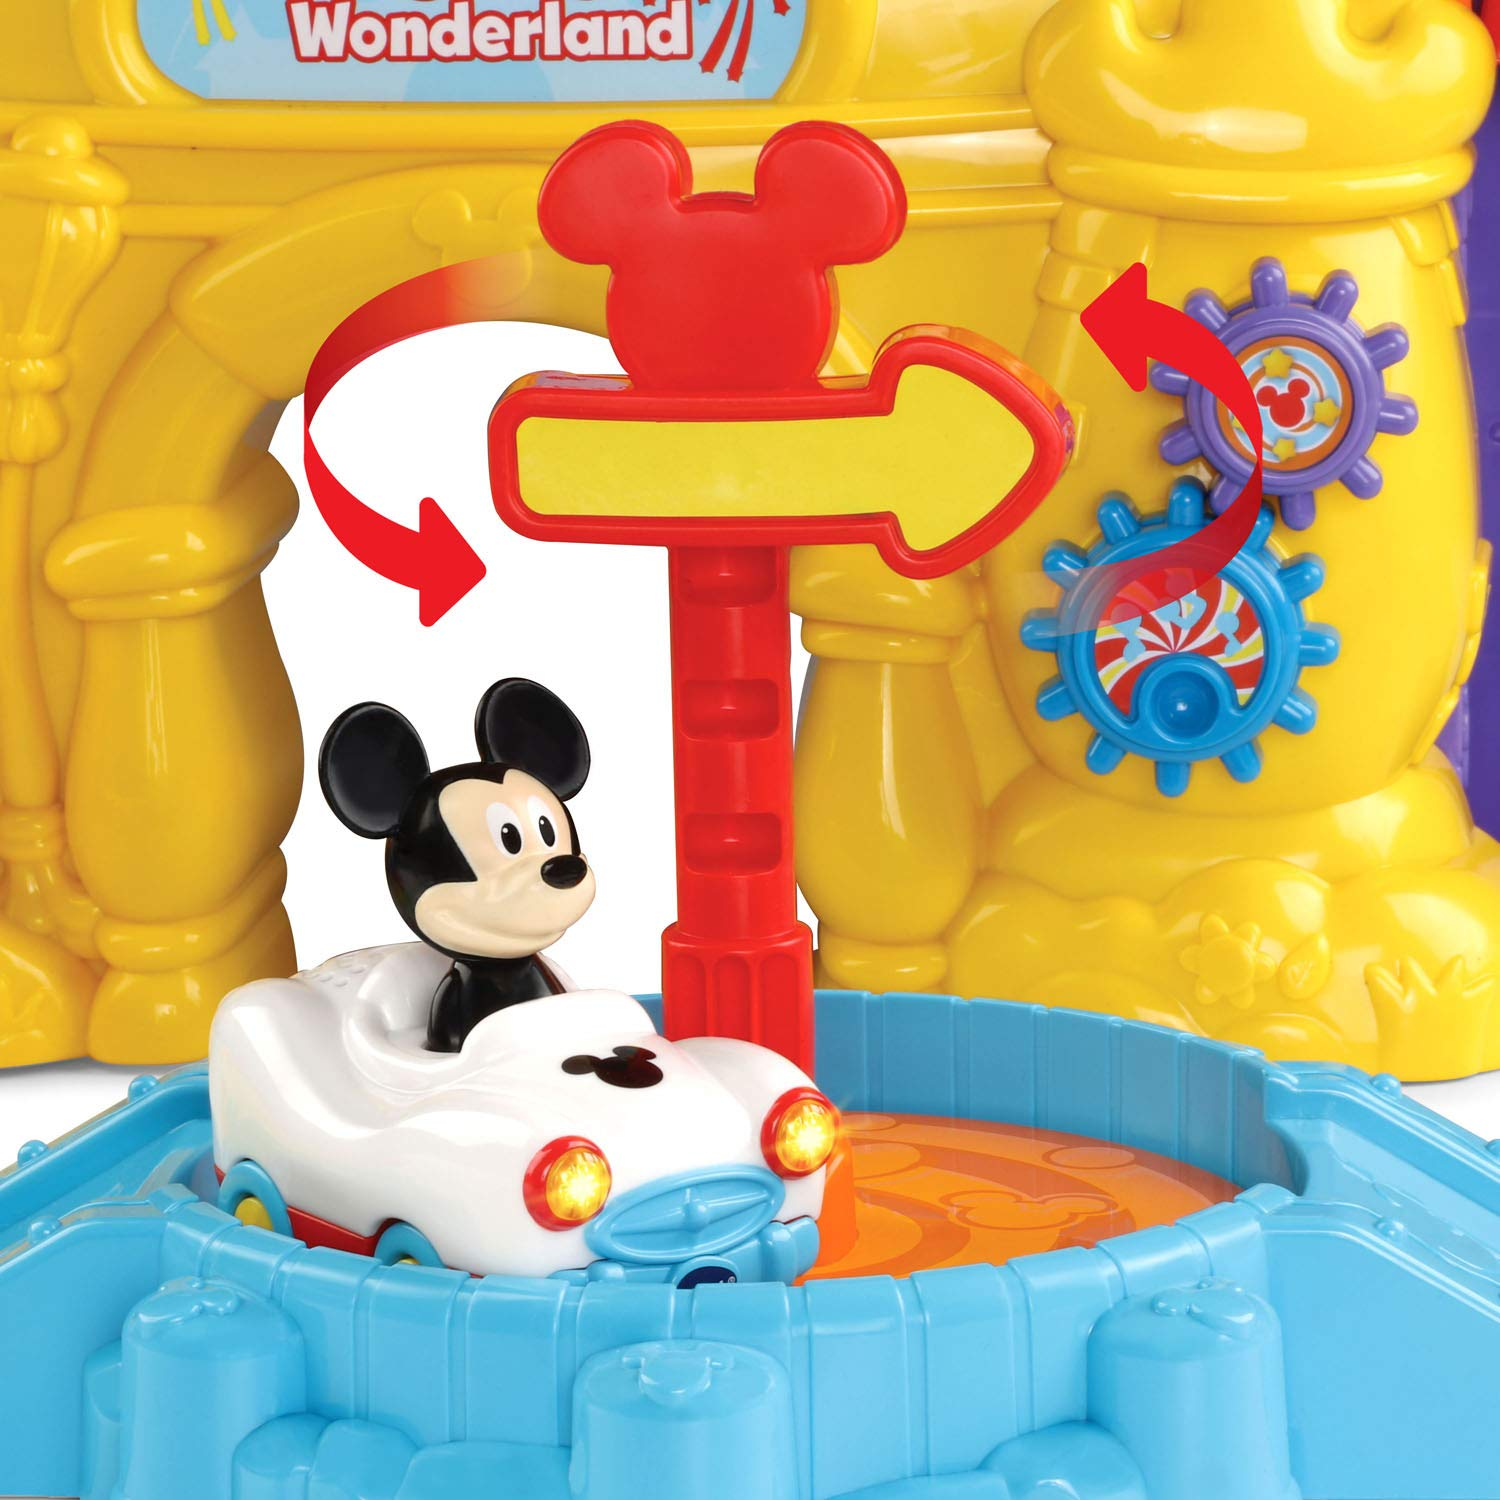 VTech Go! Go! Smart Wheels Mickey Mouse Magical Wonderland, Multicolor by VTech (Image #4)